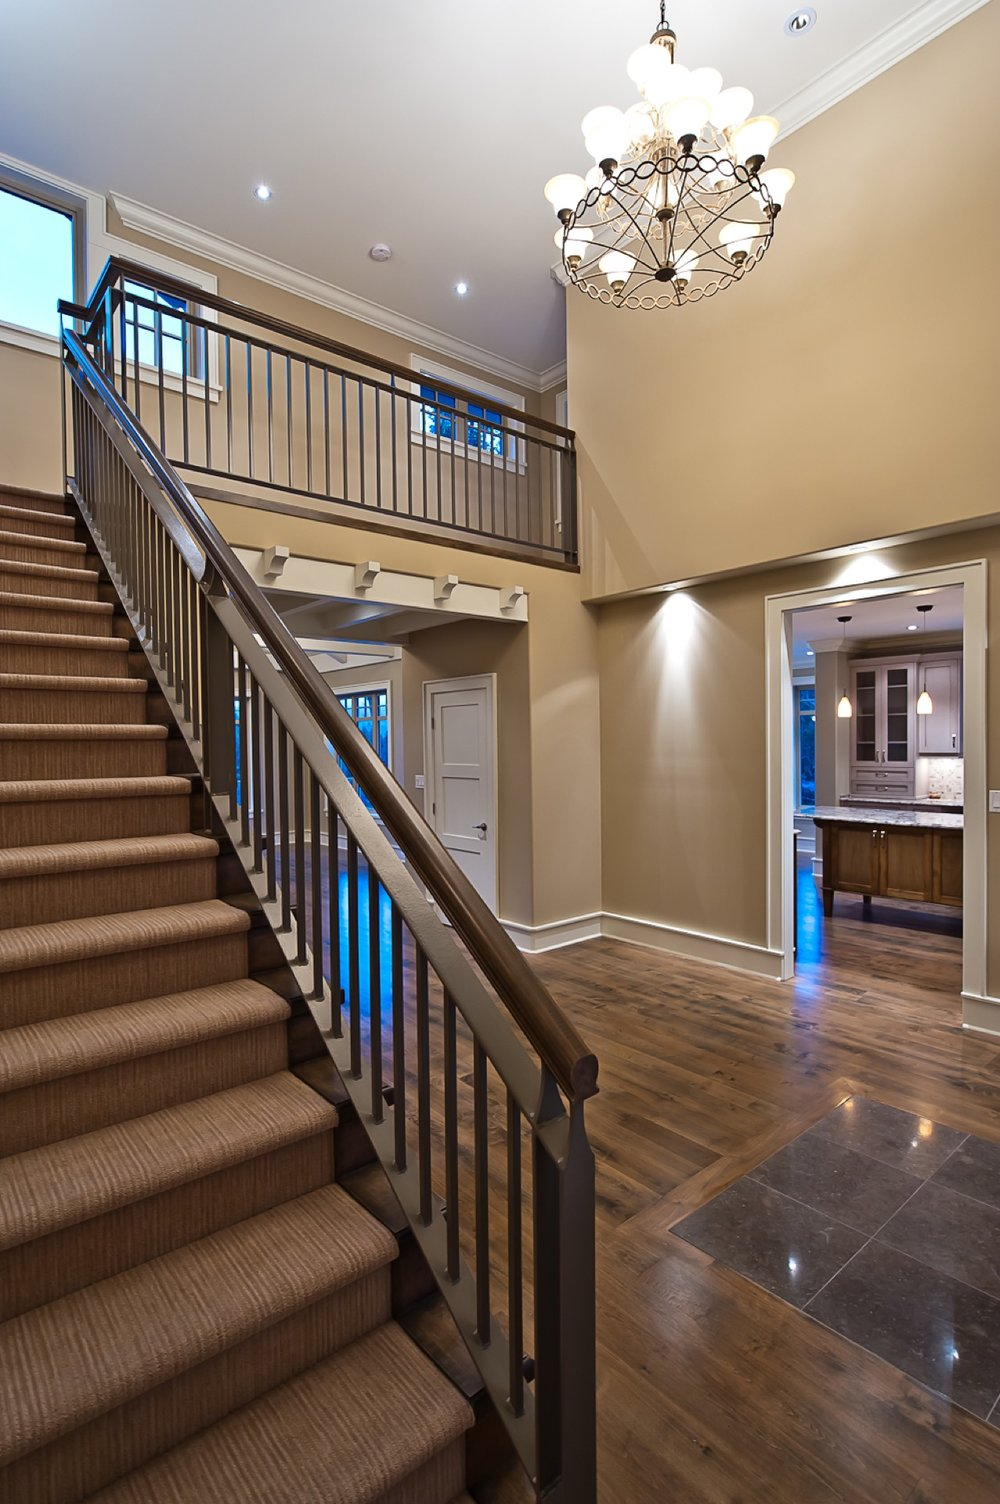 Paul Dabbs Custom Homes - Bonnington 35.jpg